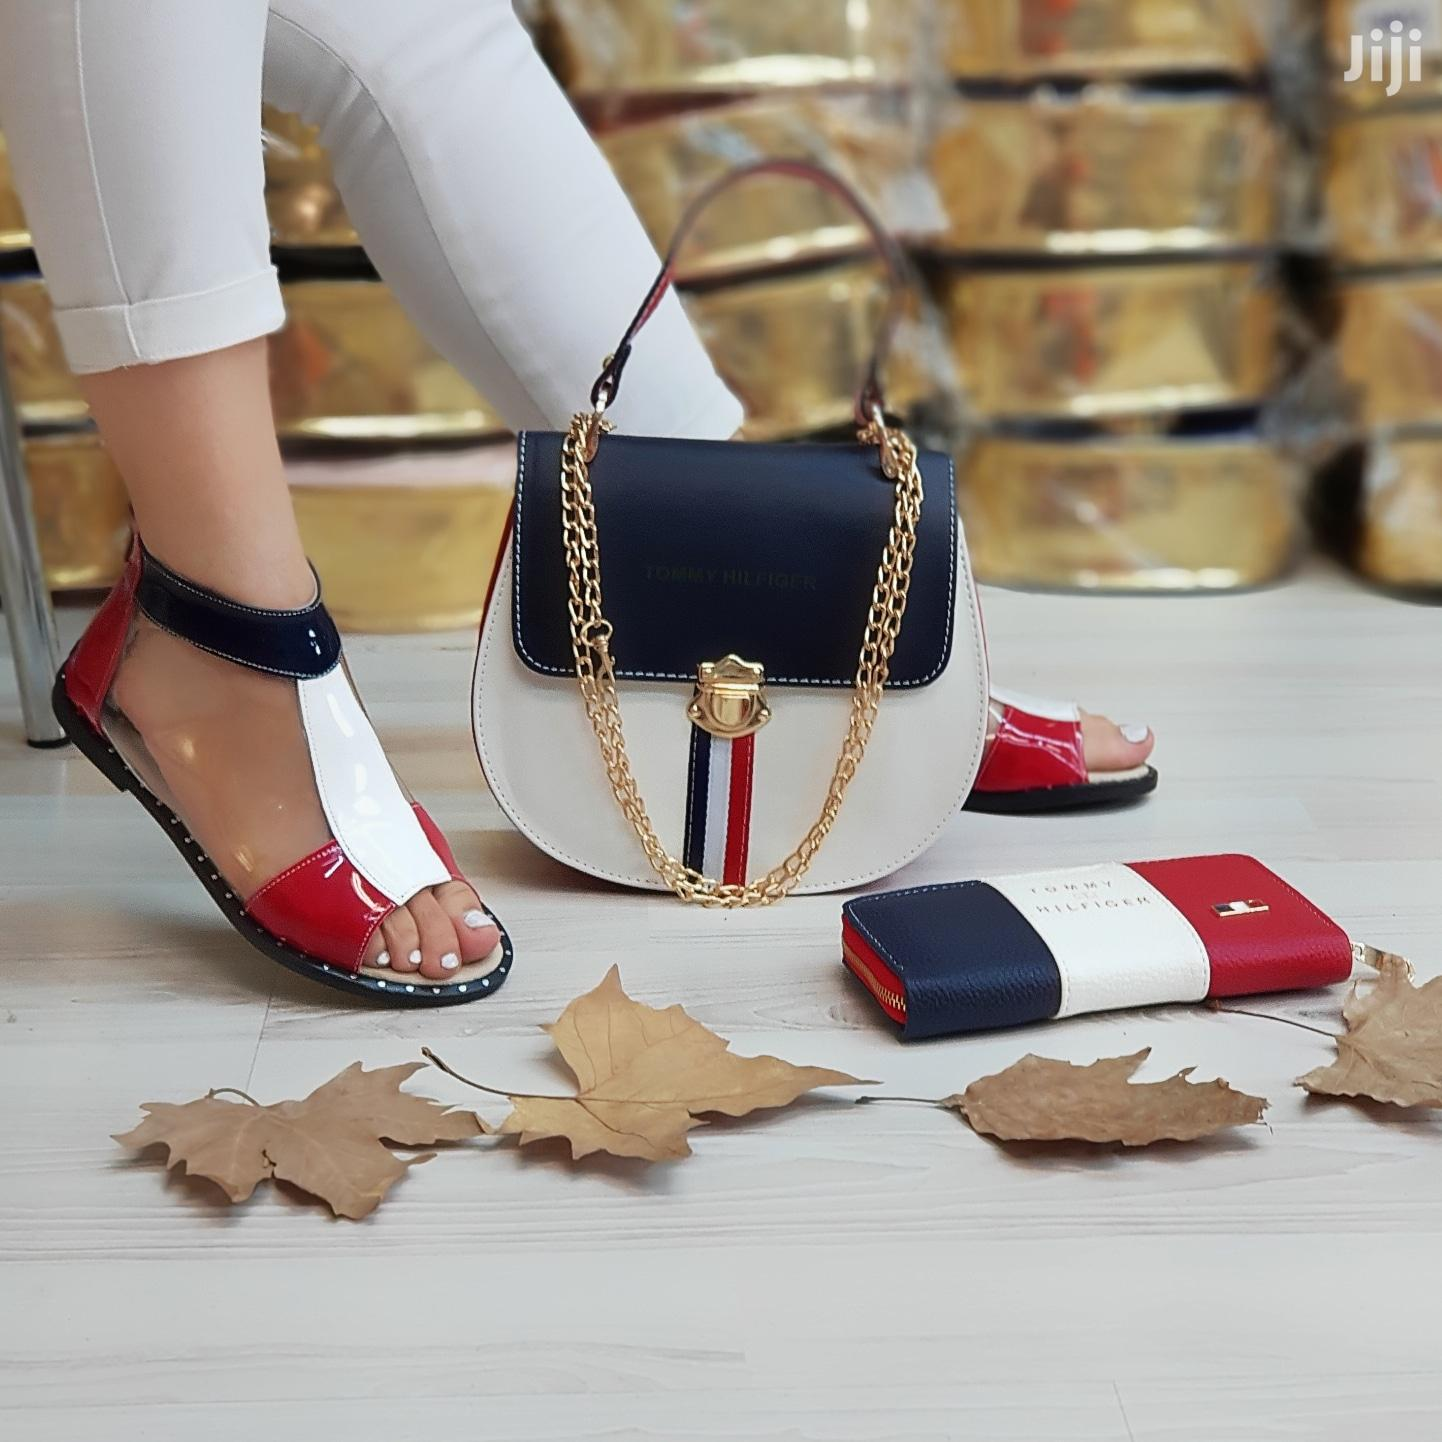 Tommy Hilfiger Women's Shoes and Bag   Shoes for sale in Kampala, Central Region, Uganda